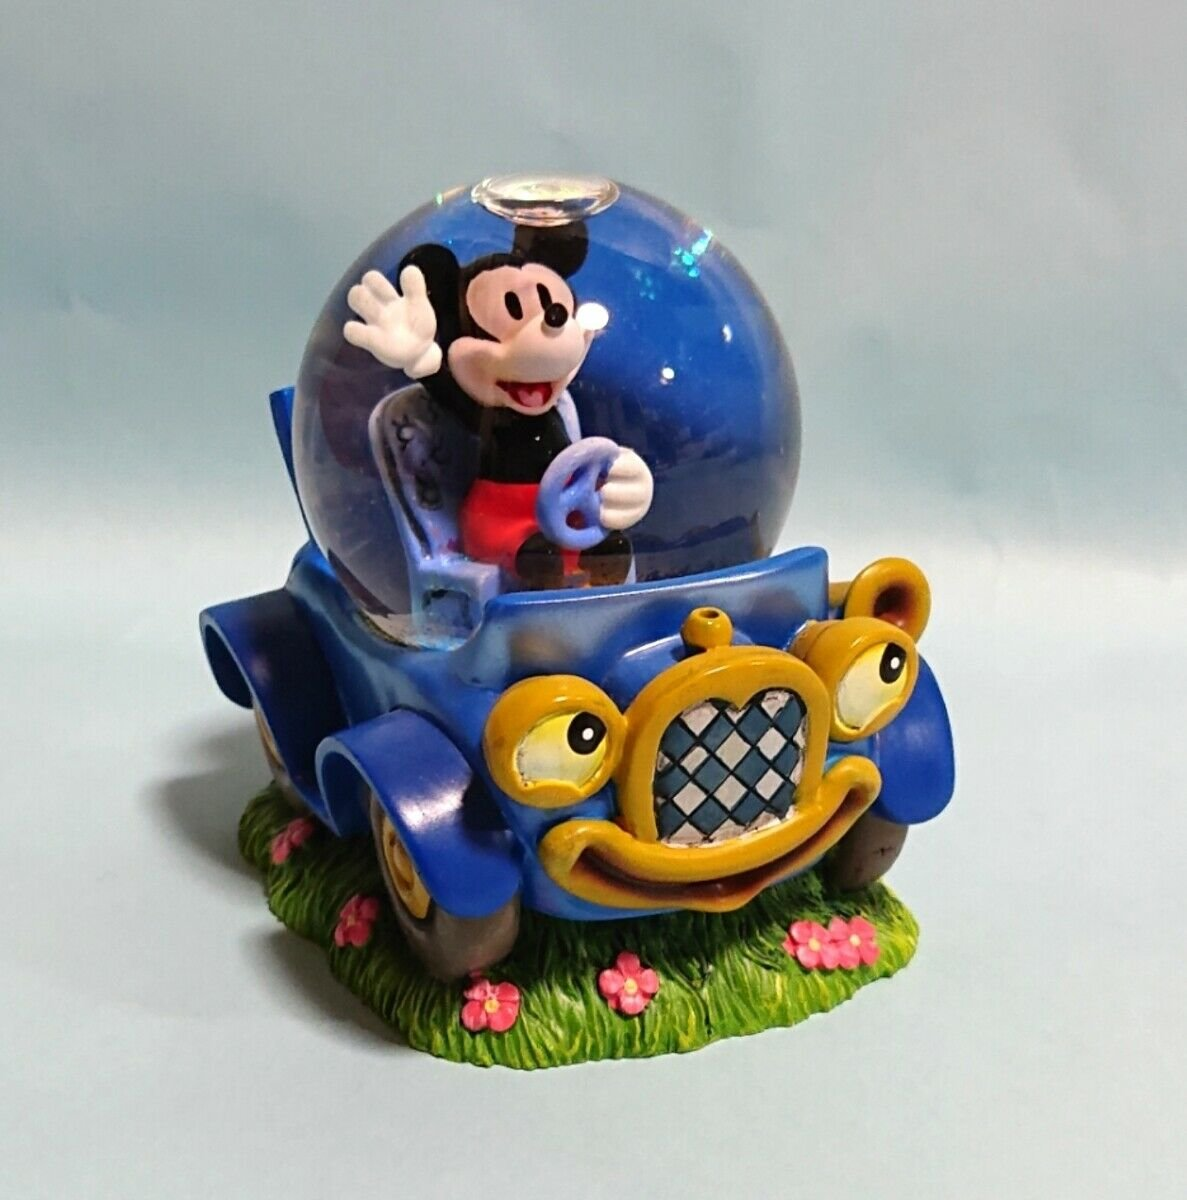 Disney Store Japan Mickey Mouse & Car Snow Globe Fig Dome Ornament